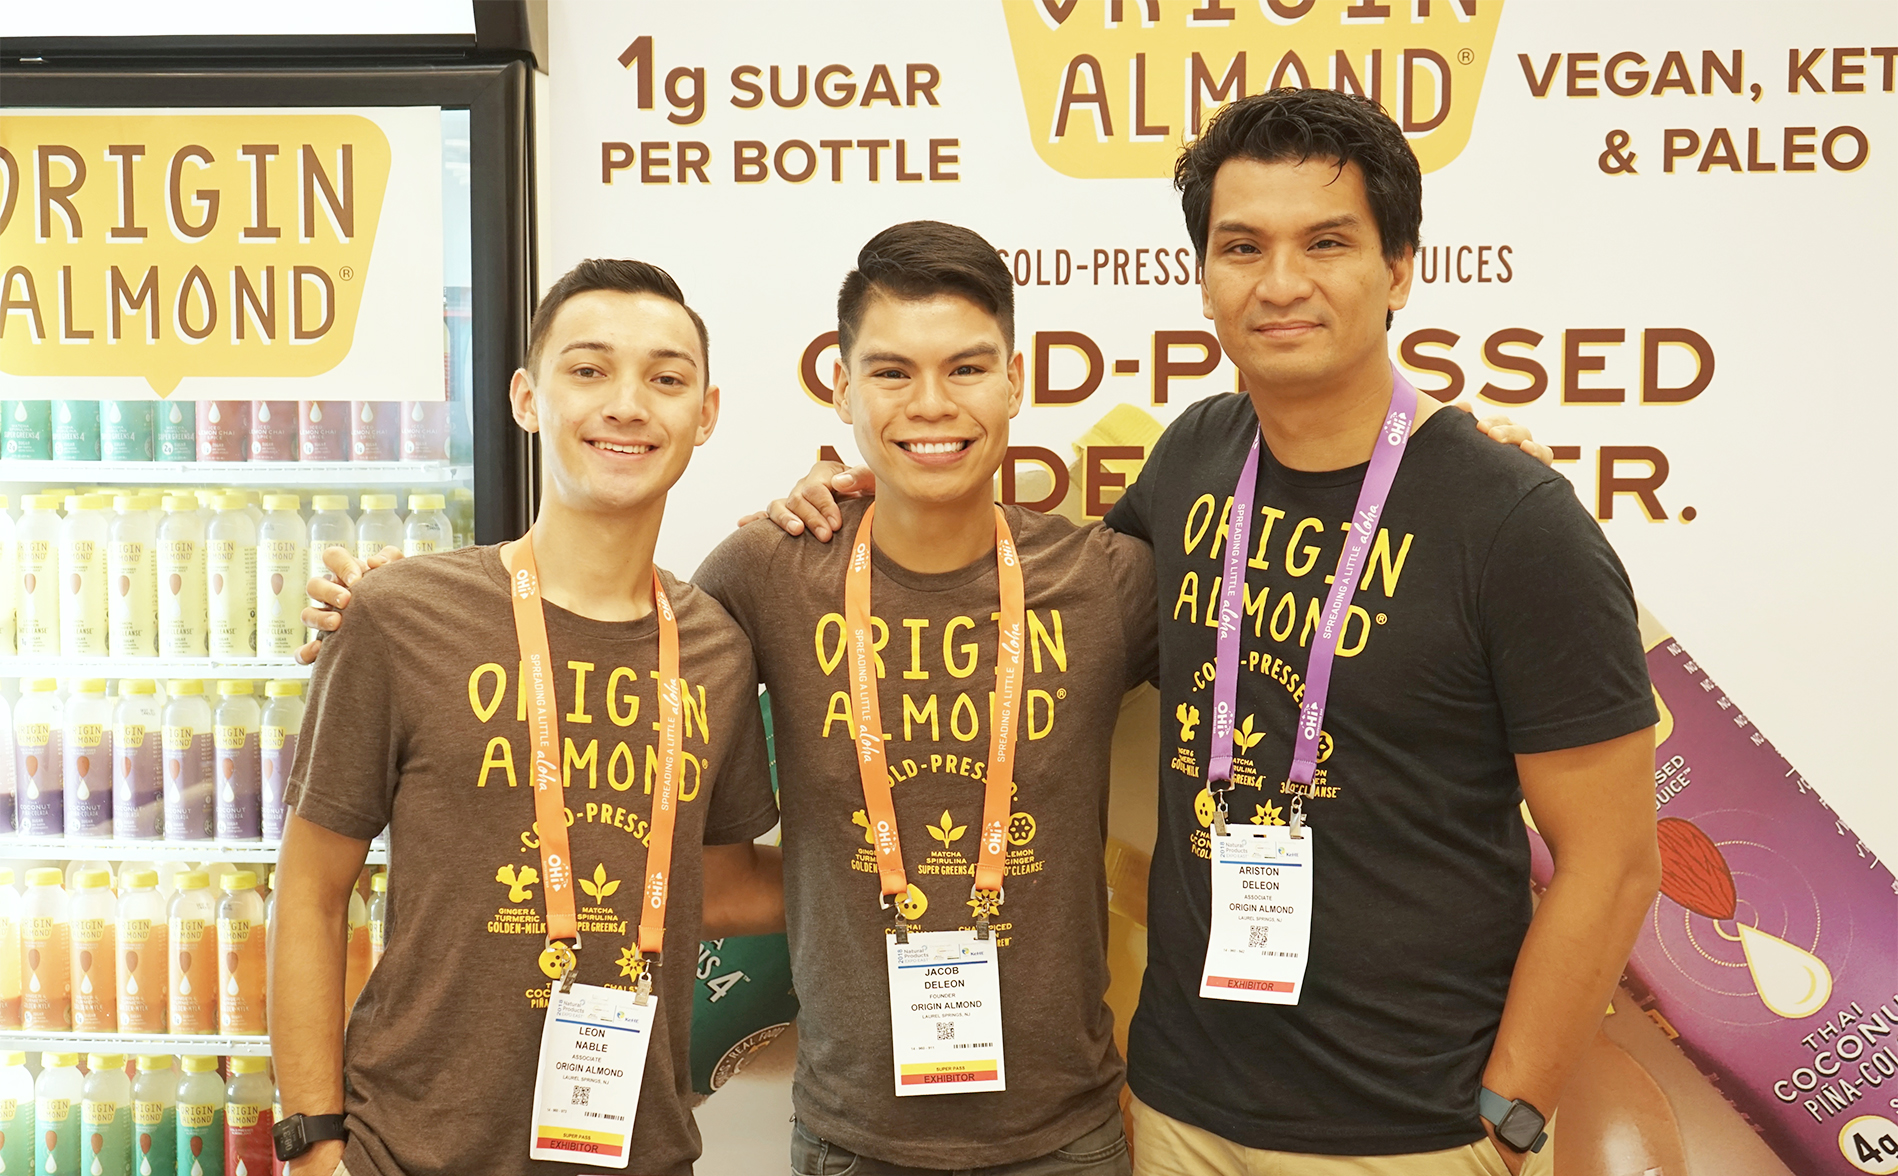 Origin Almond - Jake, Brother, and team member Exhibiting at Expo East (Natural Foods Trade Show).jpg